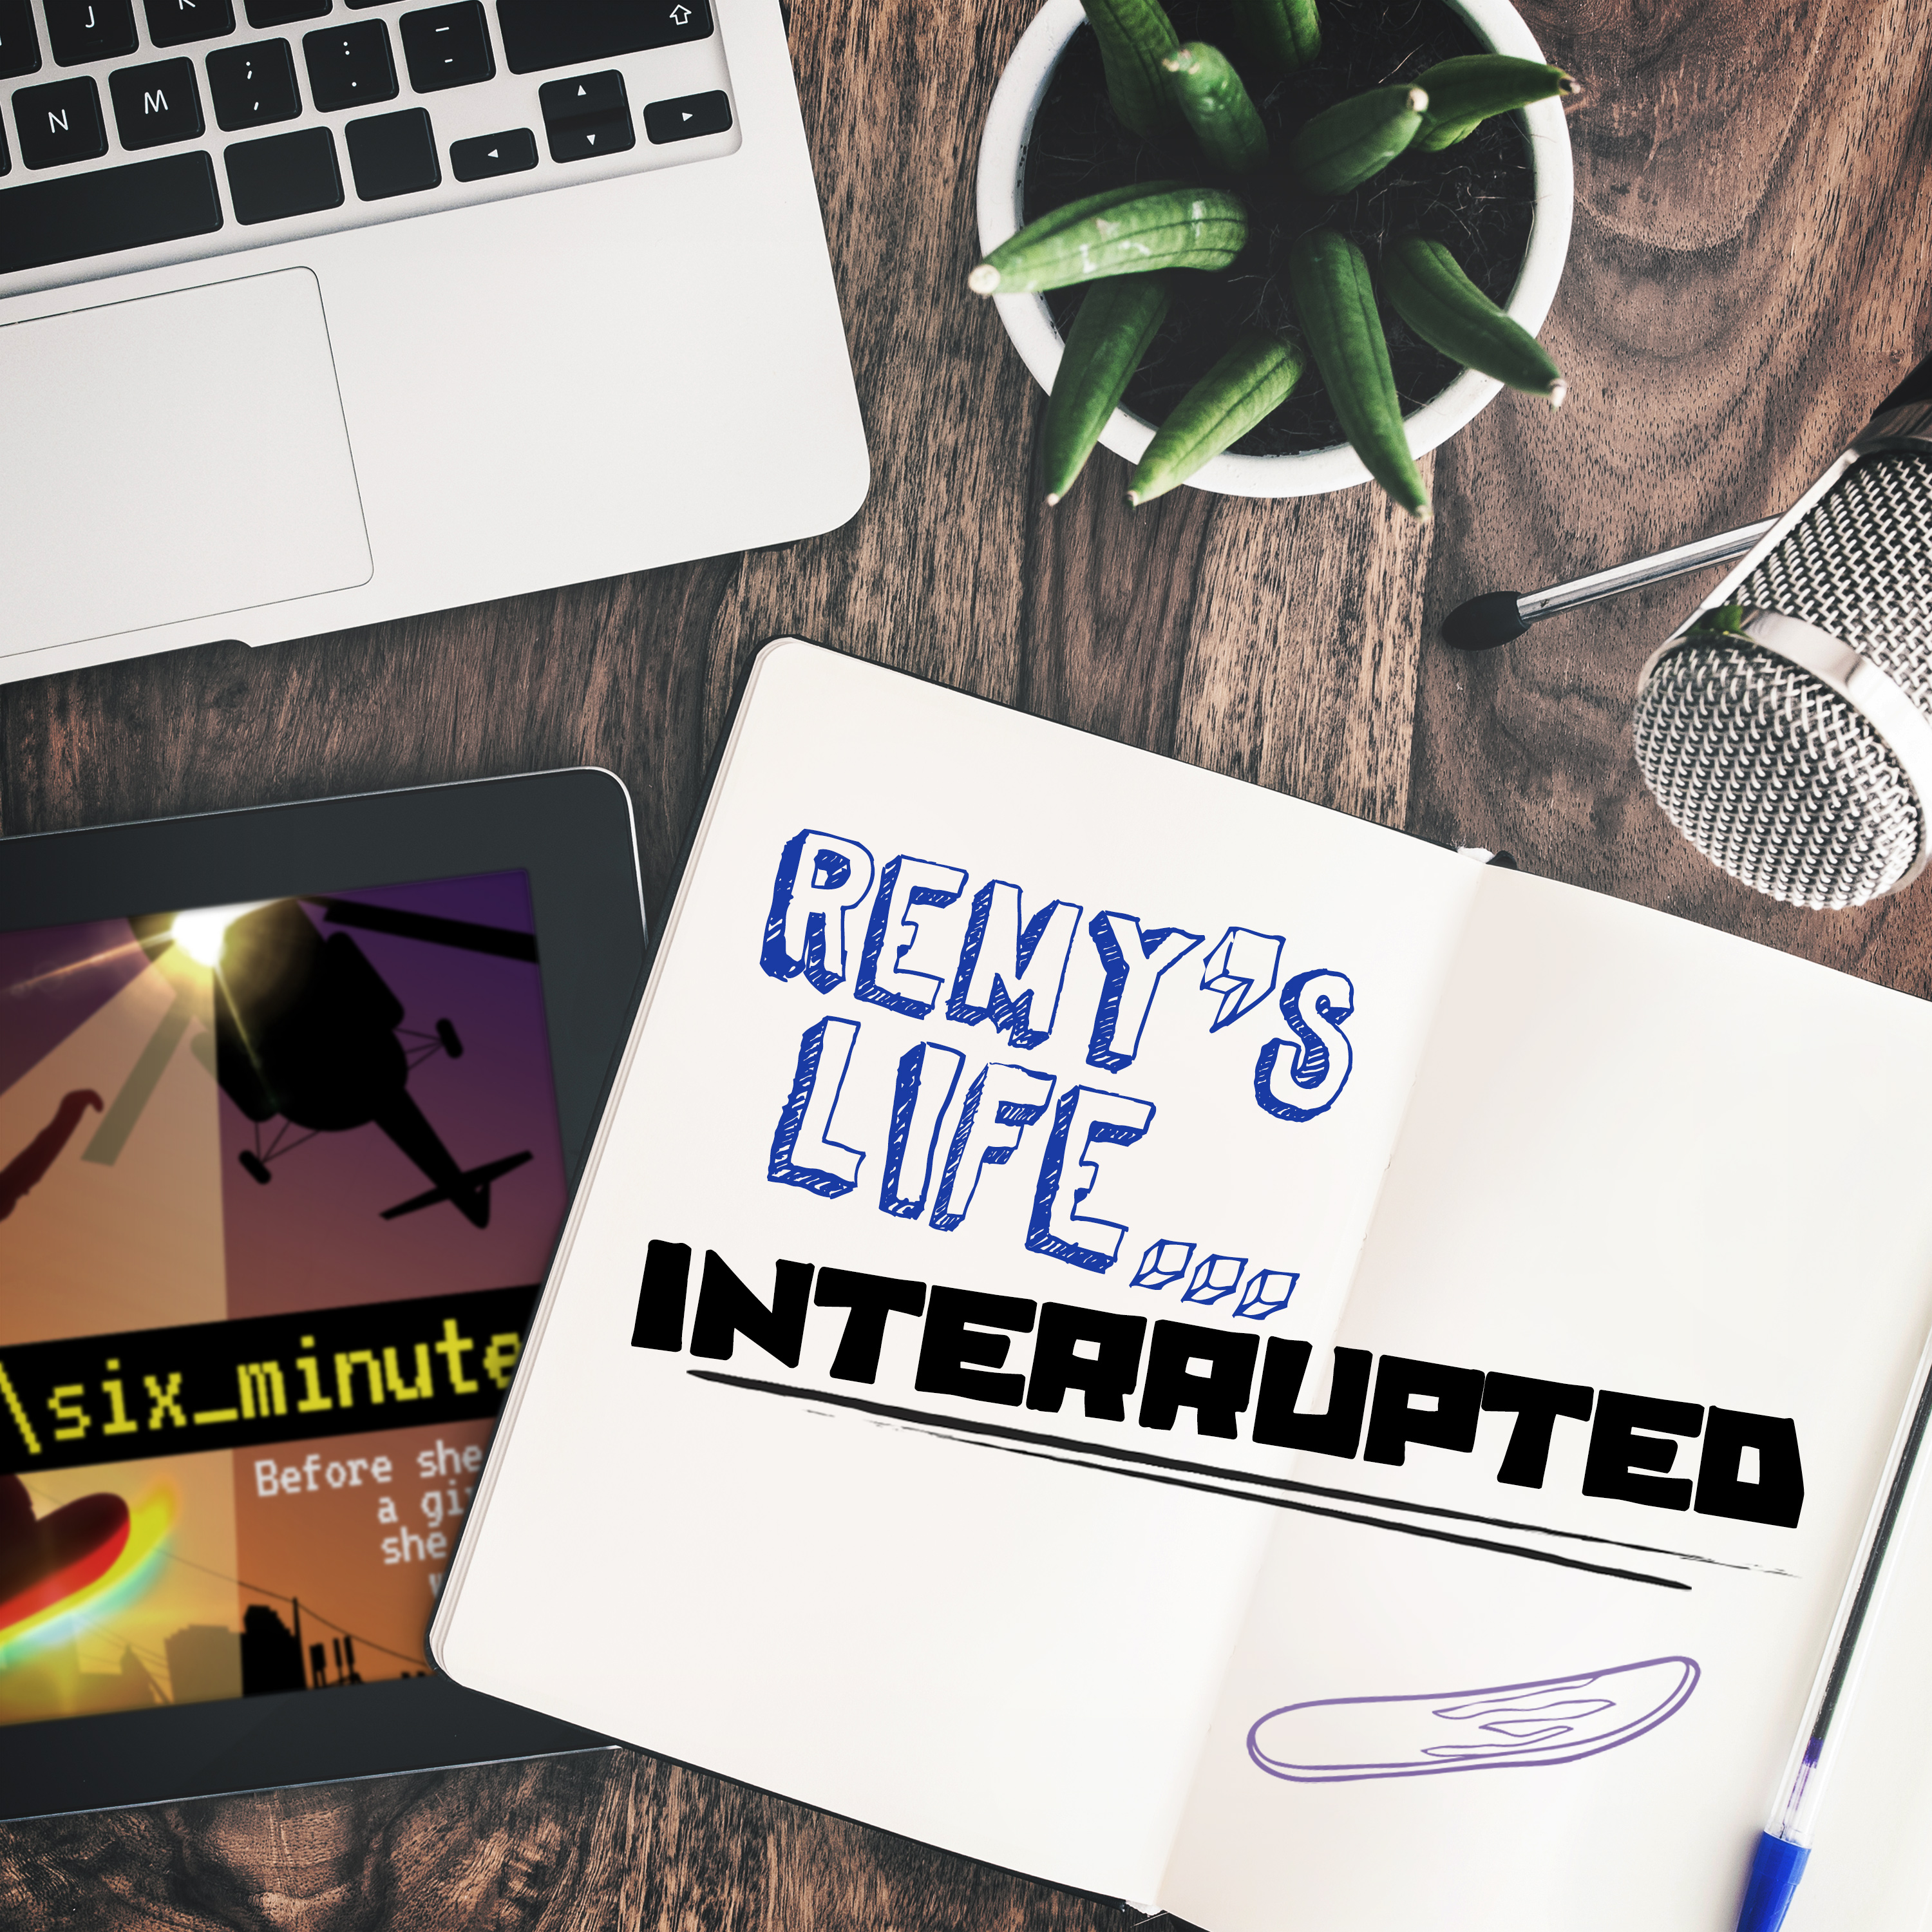 Remy's Life Interrupted: EP89